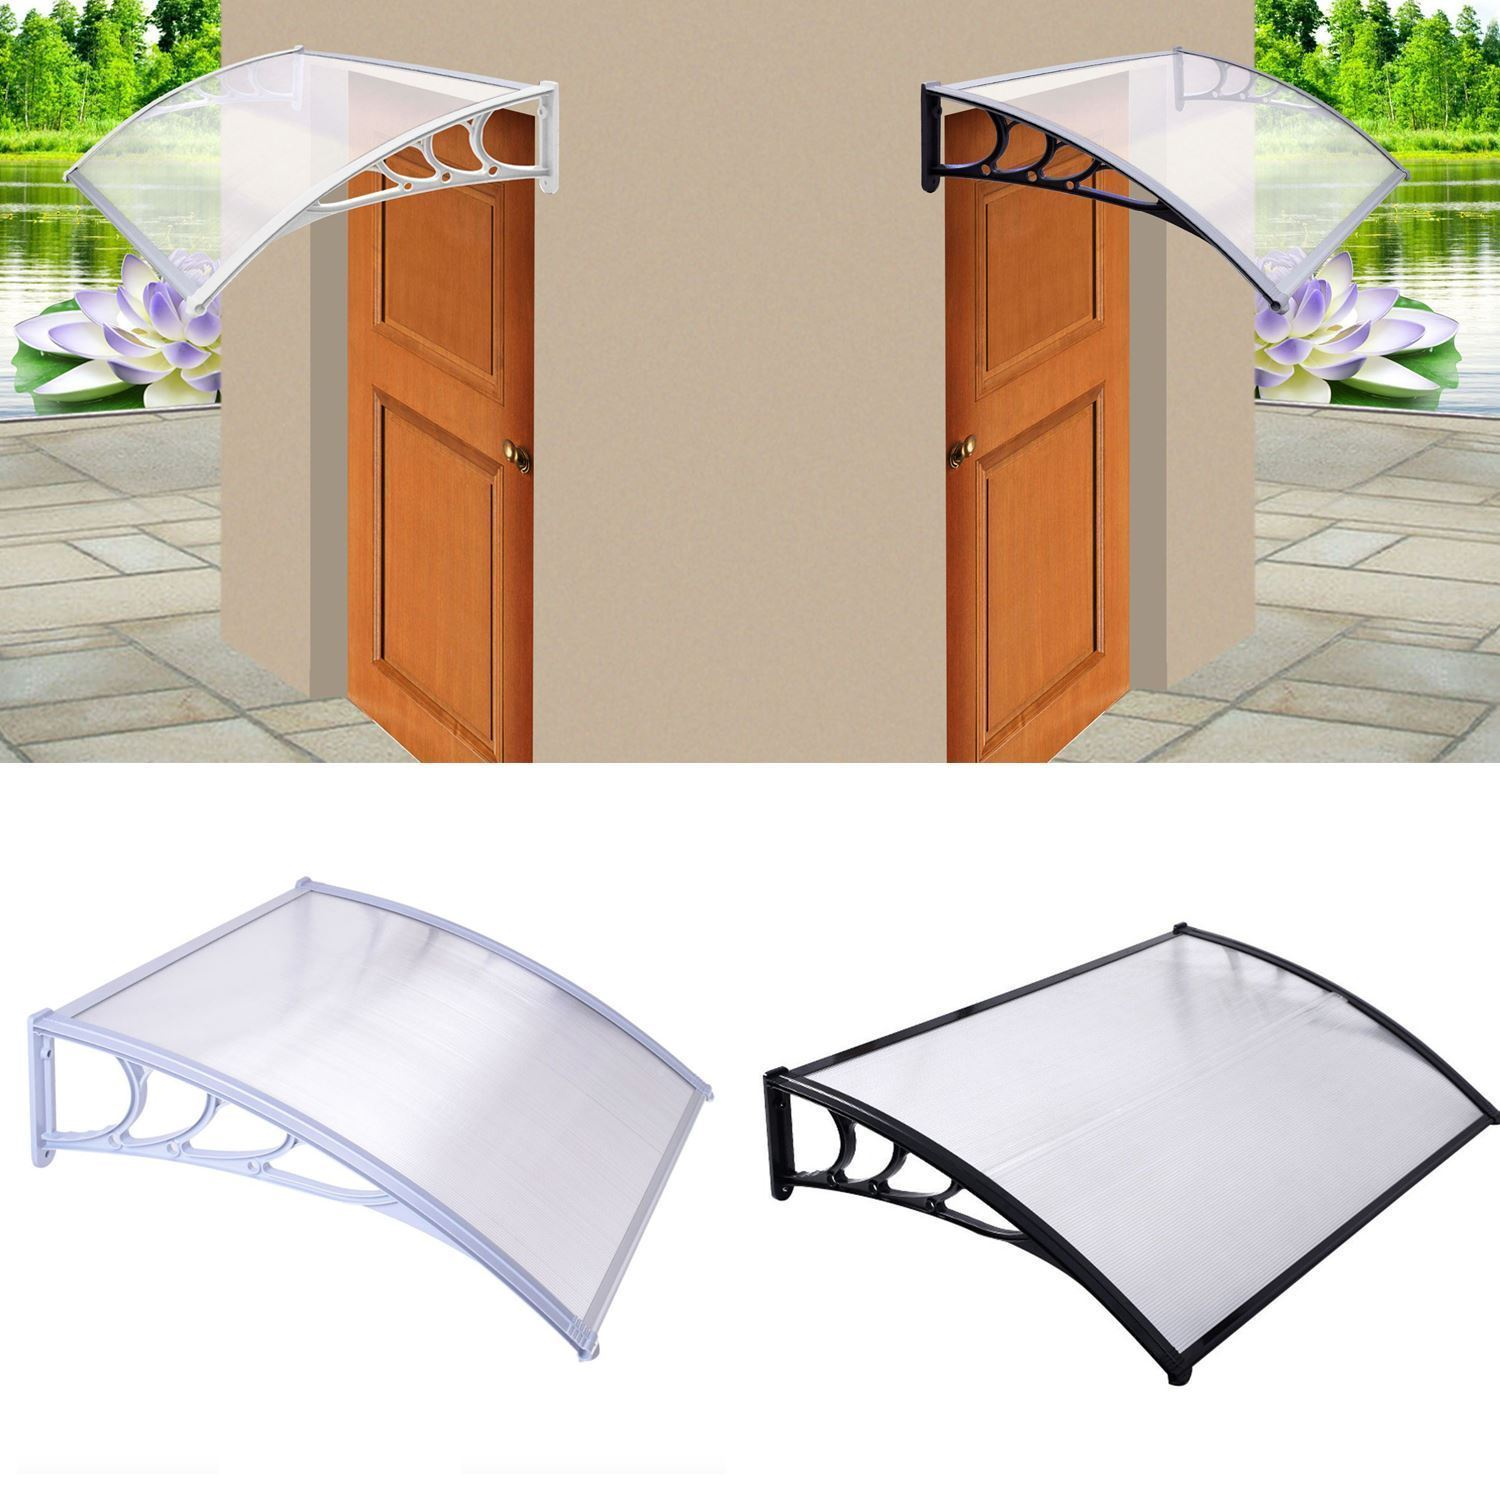 Door Canopy Awning Window Rain Cover Protector Shelter